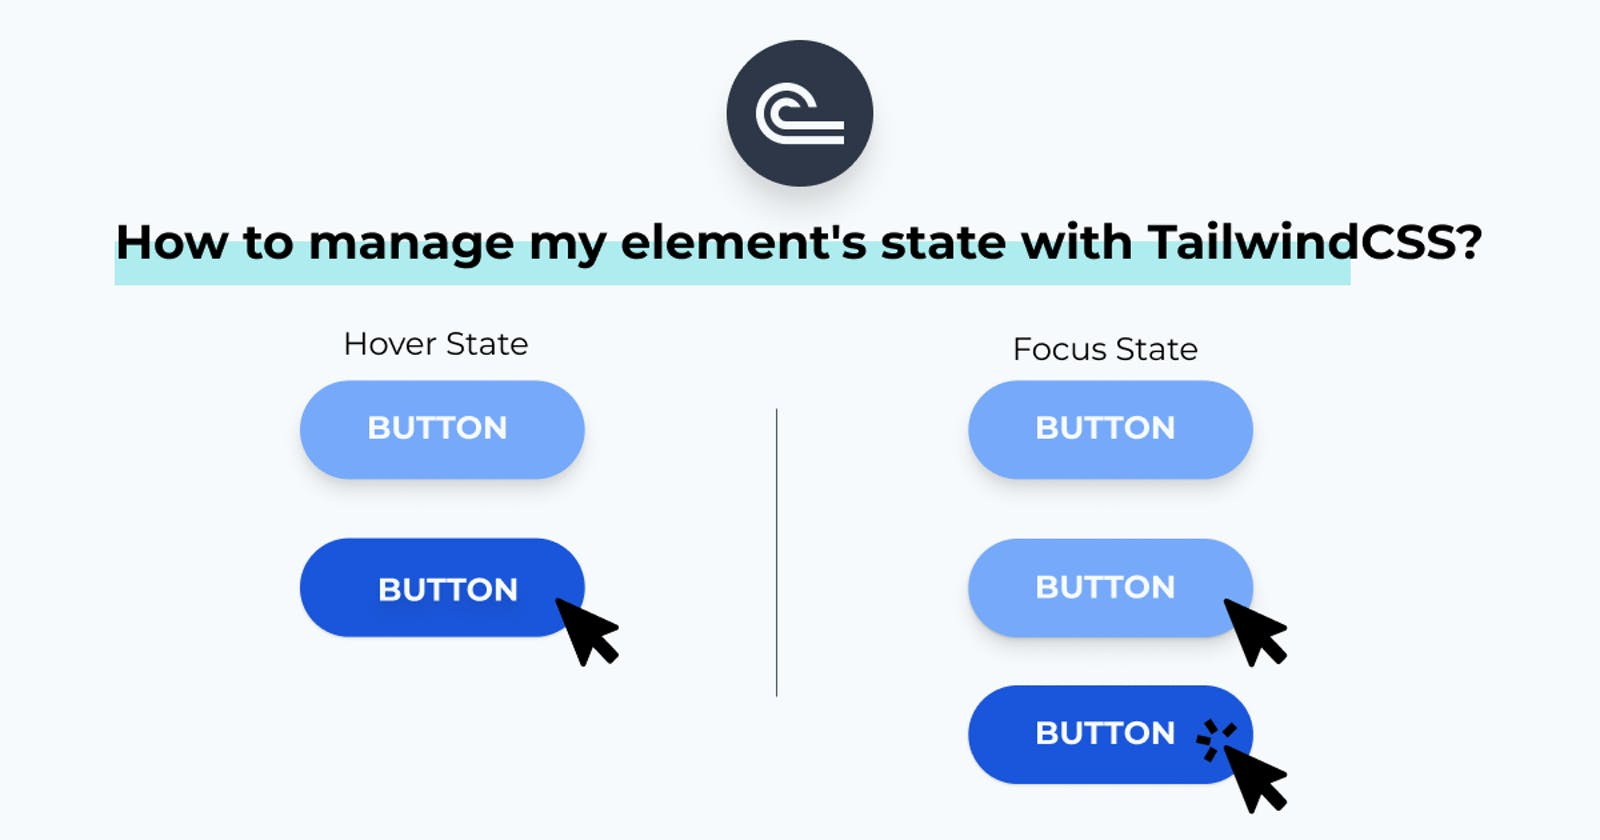 How to manage my element's state with TailwindCSS?